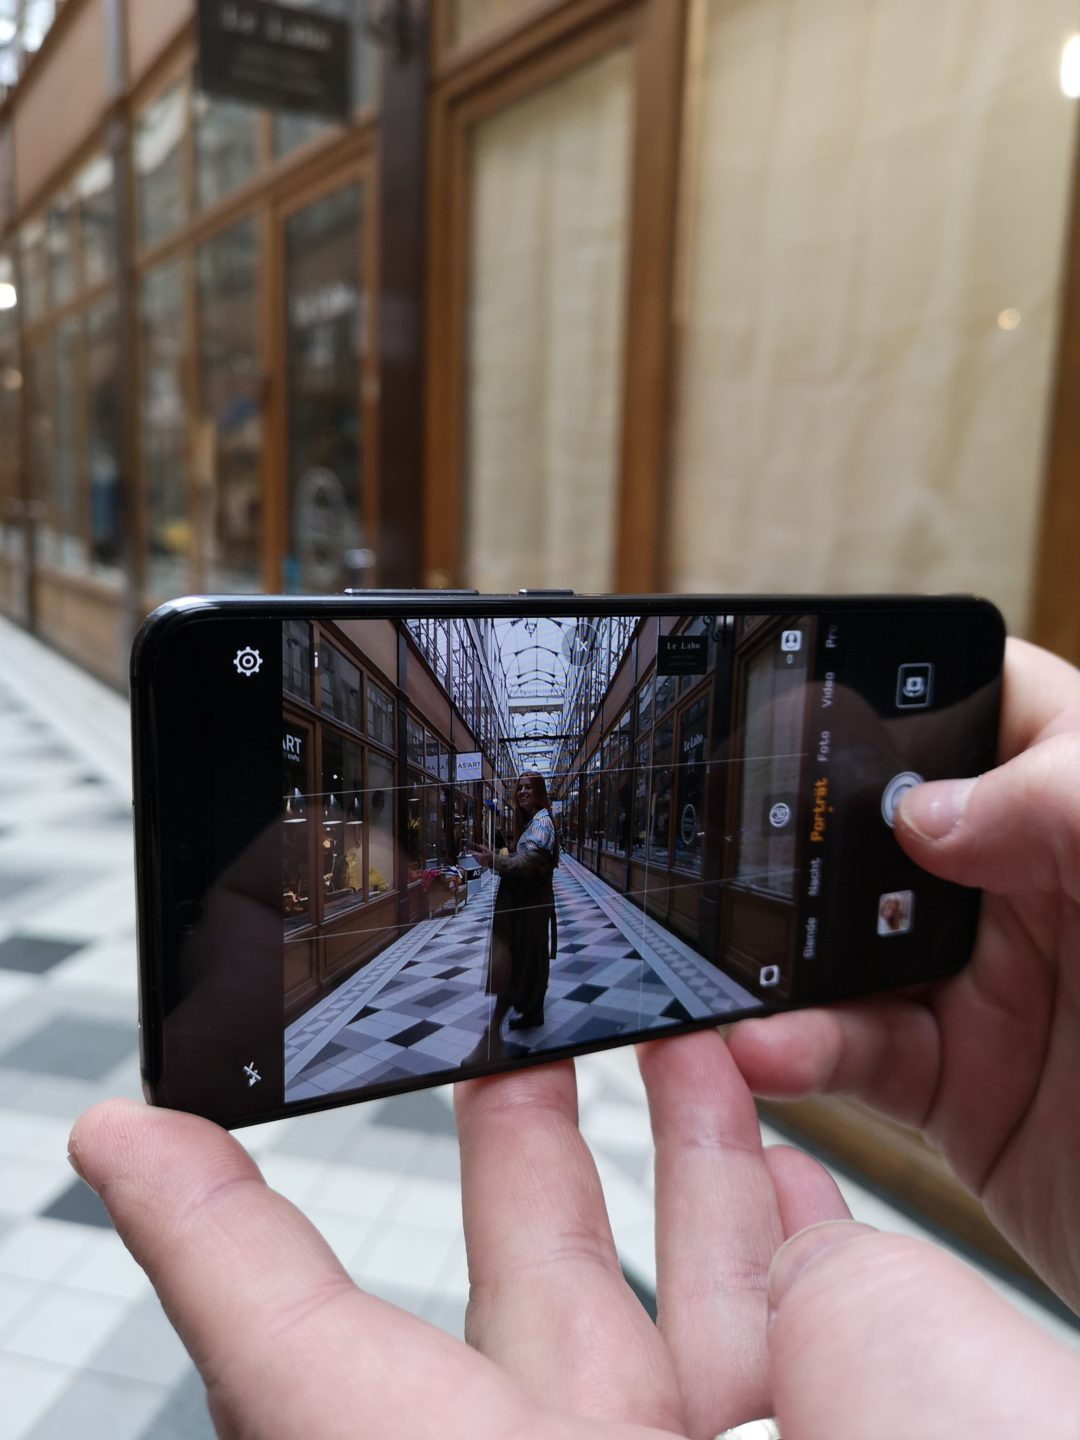 Huawei P20 Pro Initial Take Martin Guay Ottawa Canada Android news all bytes